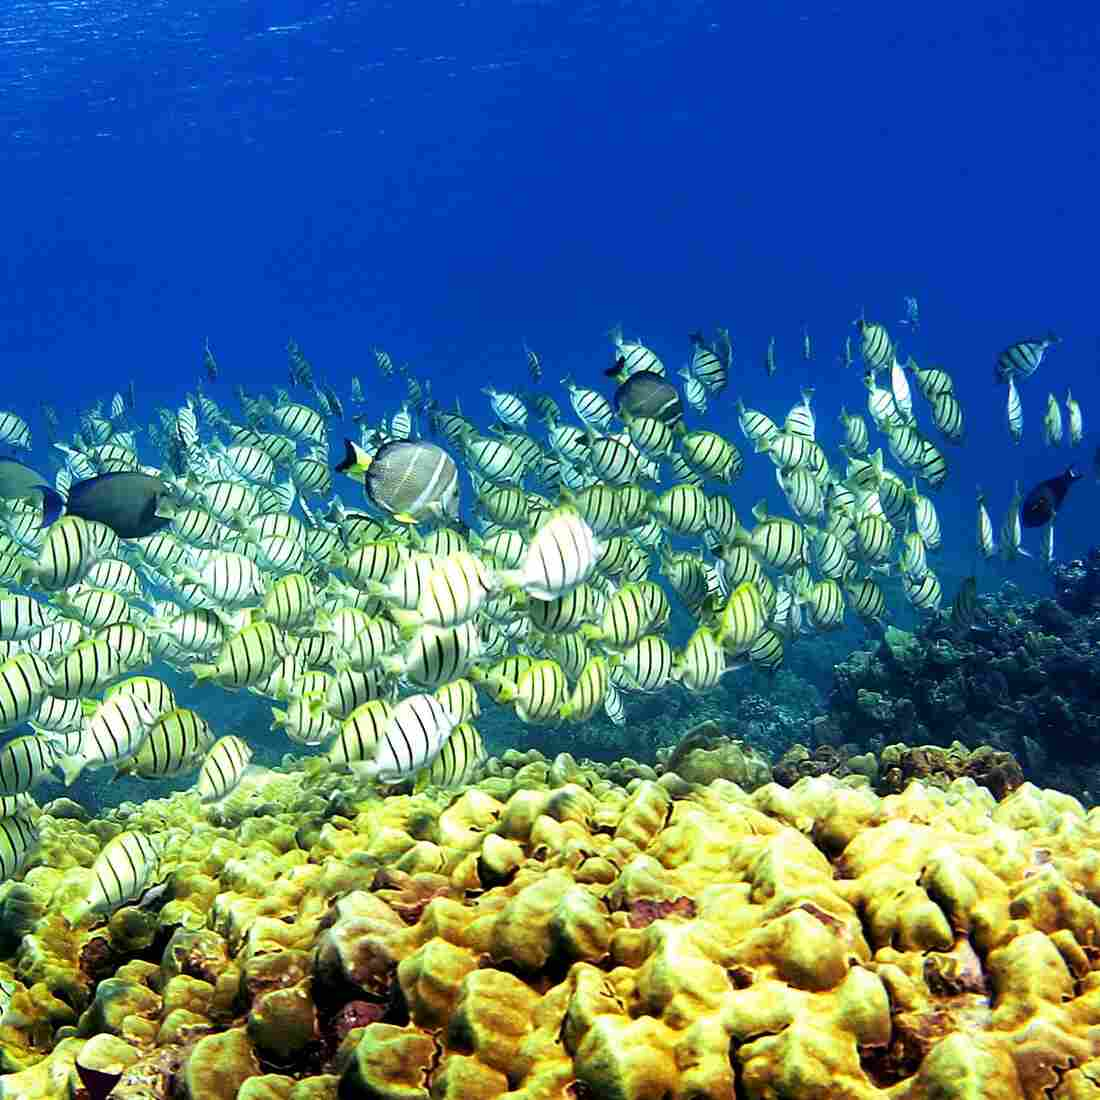 A school of manini fish passes over a coral reef at Hanauma Bay in 2005, in Honolulu. Researchers say schooling behavior like the kind seen in fish helps groups of animals make better decisions than any one member of the group could.